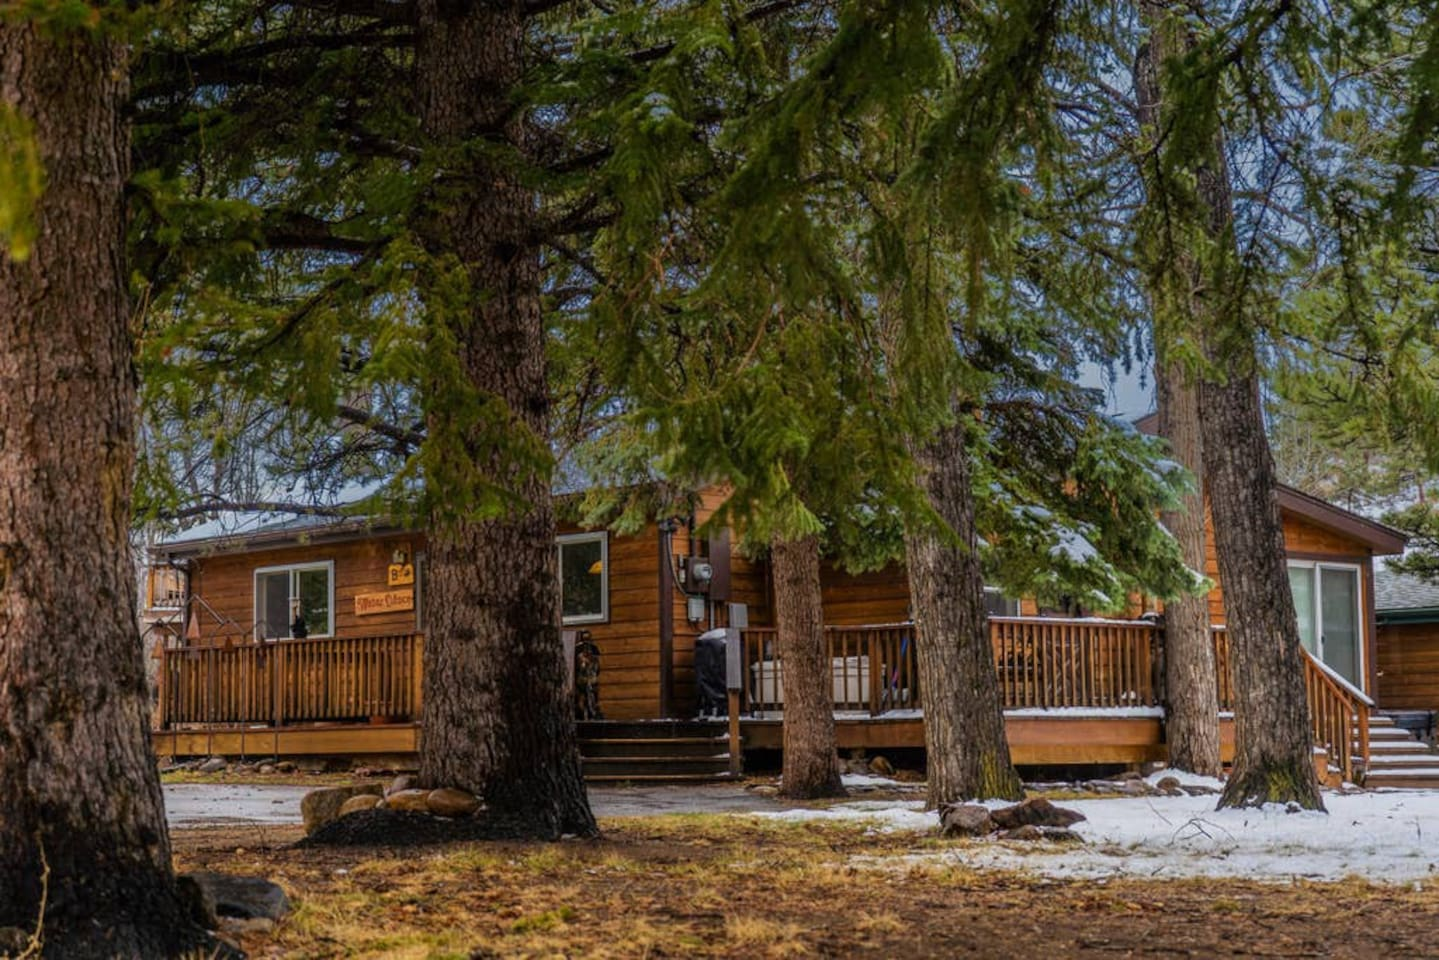 Enjoy this beautiful 3BR riverfront cabin, featuring a large deck, covered gazebo with a BBQ and picnic table, a hot tub, and a firepit 5 feet from the Big Thompson River (which incidentally has a huge fishing hole a few hundred feet upstream). Water Dance is the perfect vacation rental, located just a block and a half from the edge of downtown Estes Park.